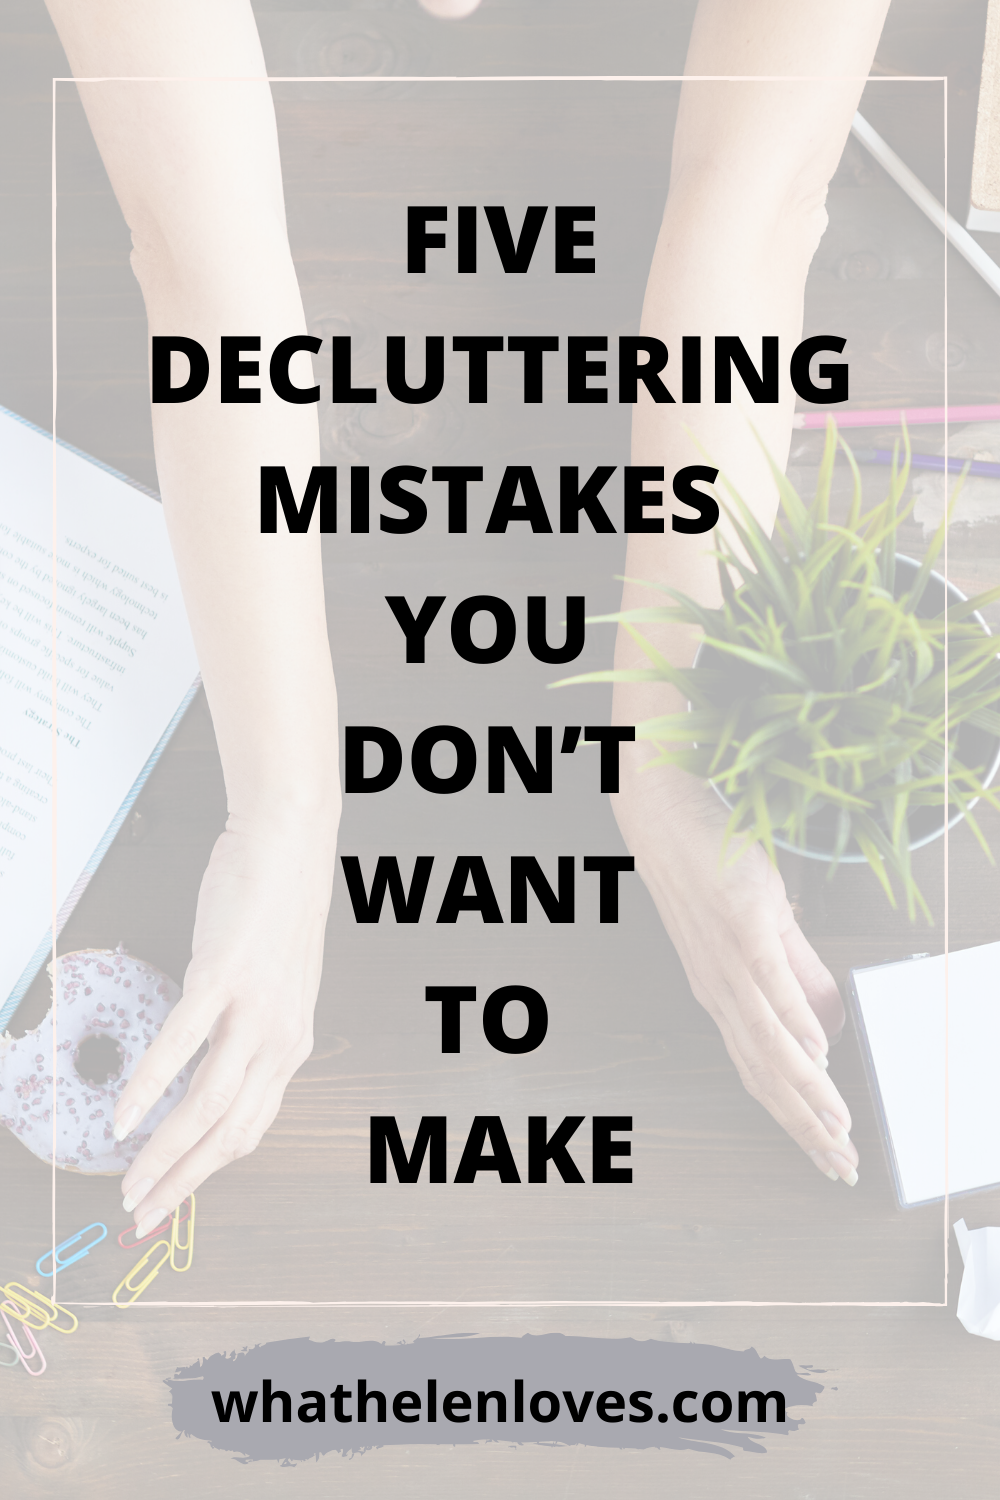 Pinterest pin for a post about five decluttering mistakes you don't want to make.